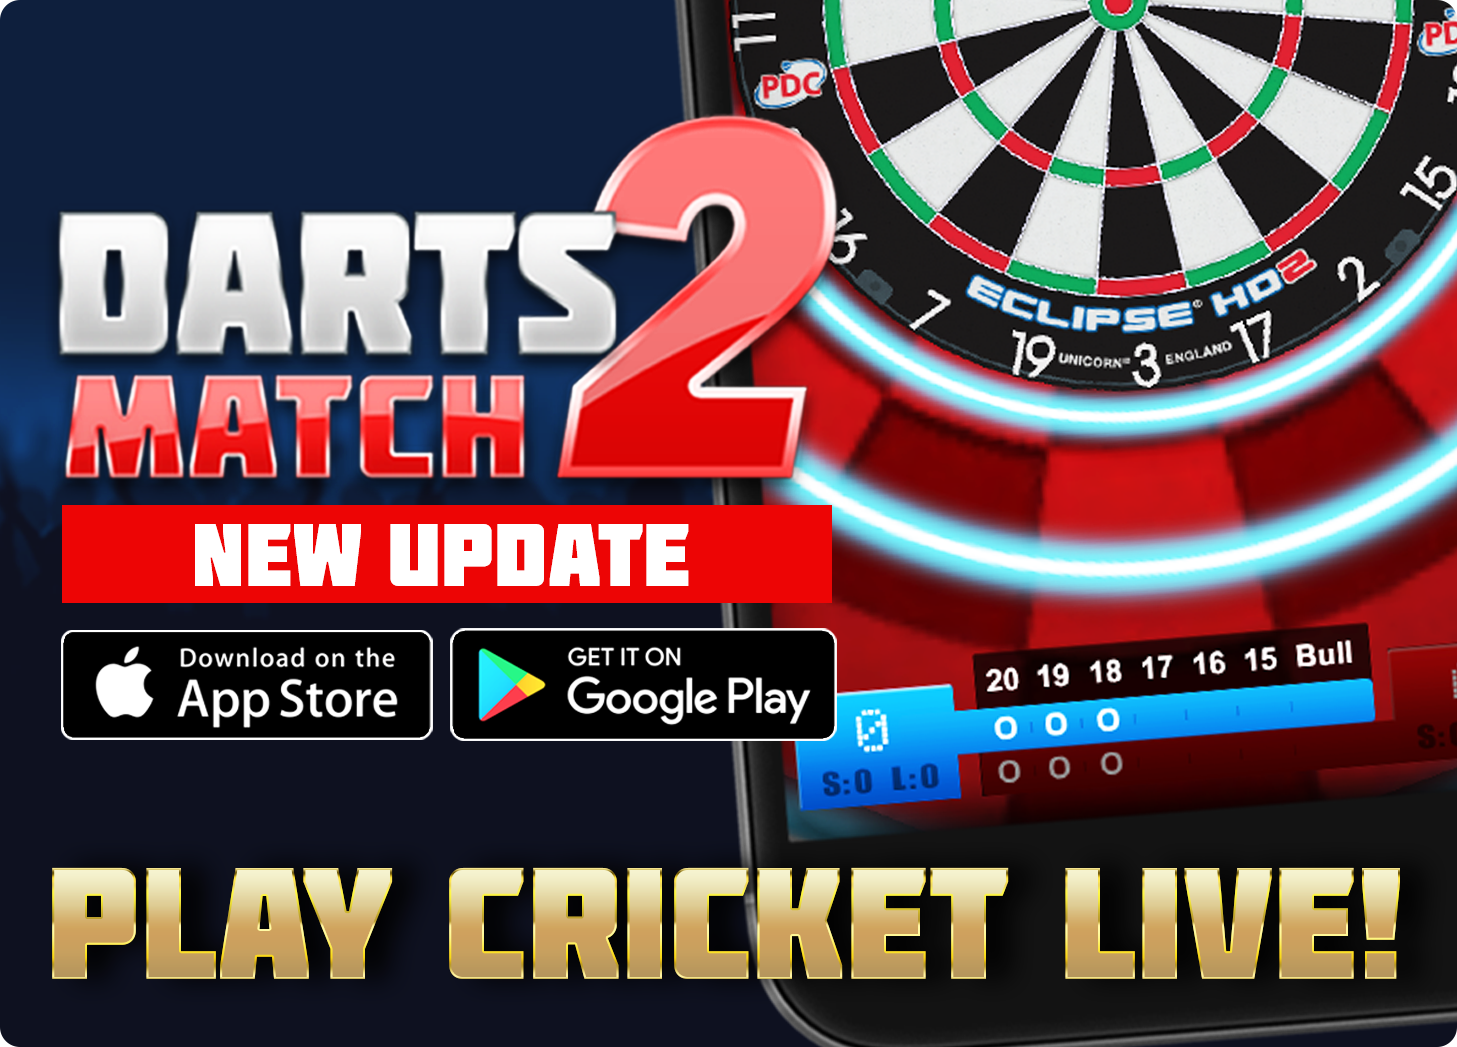 Darts Match 2 The Sequel To The Million Downloaded Darts